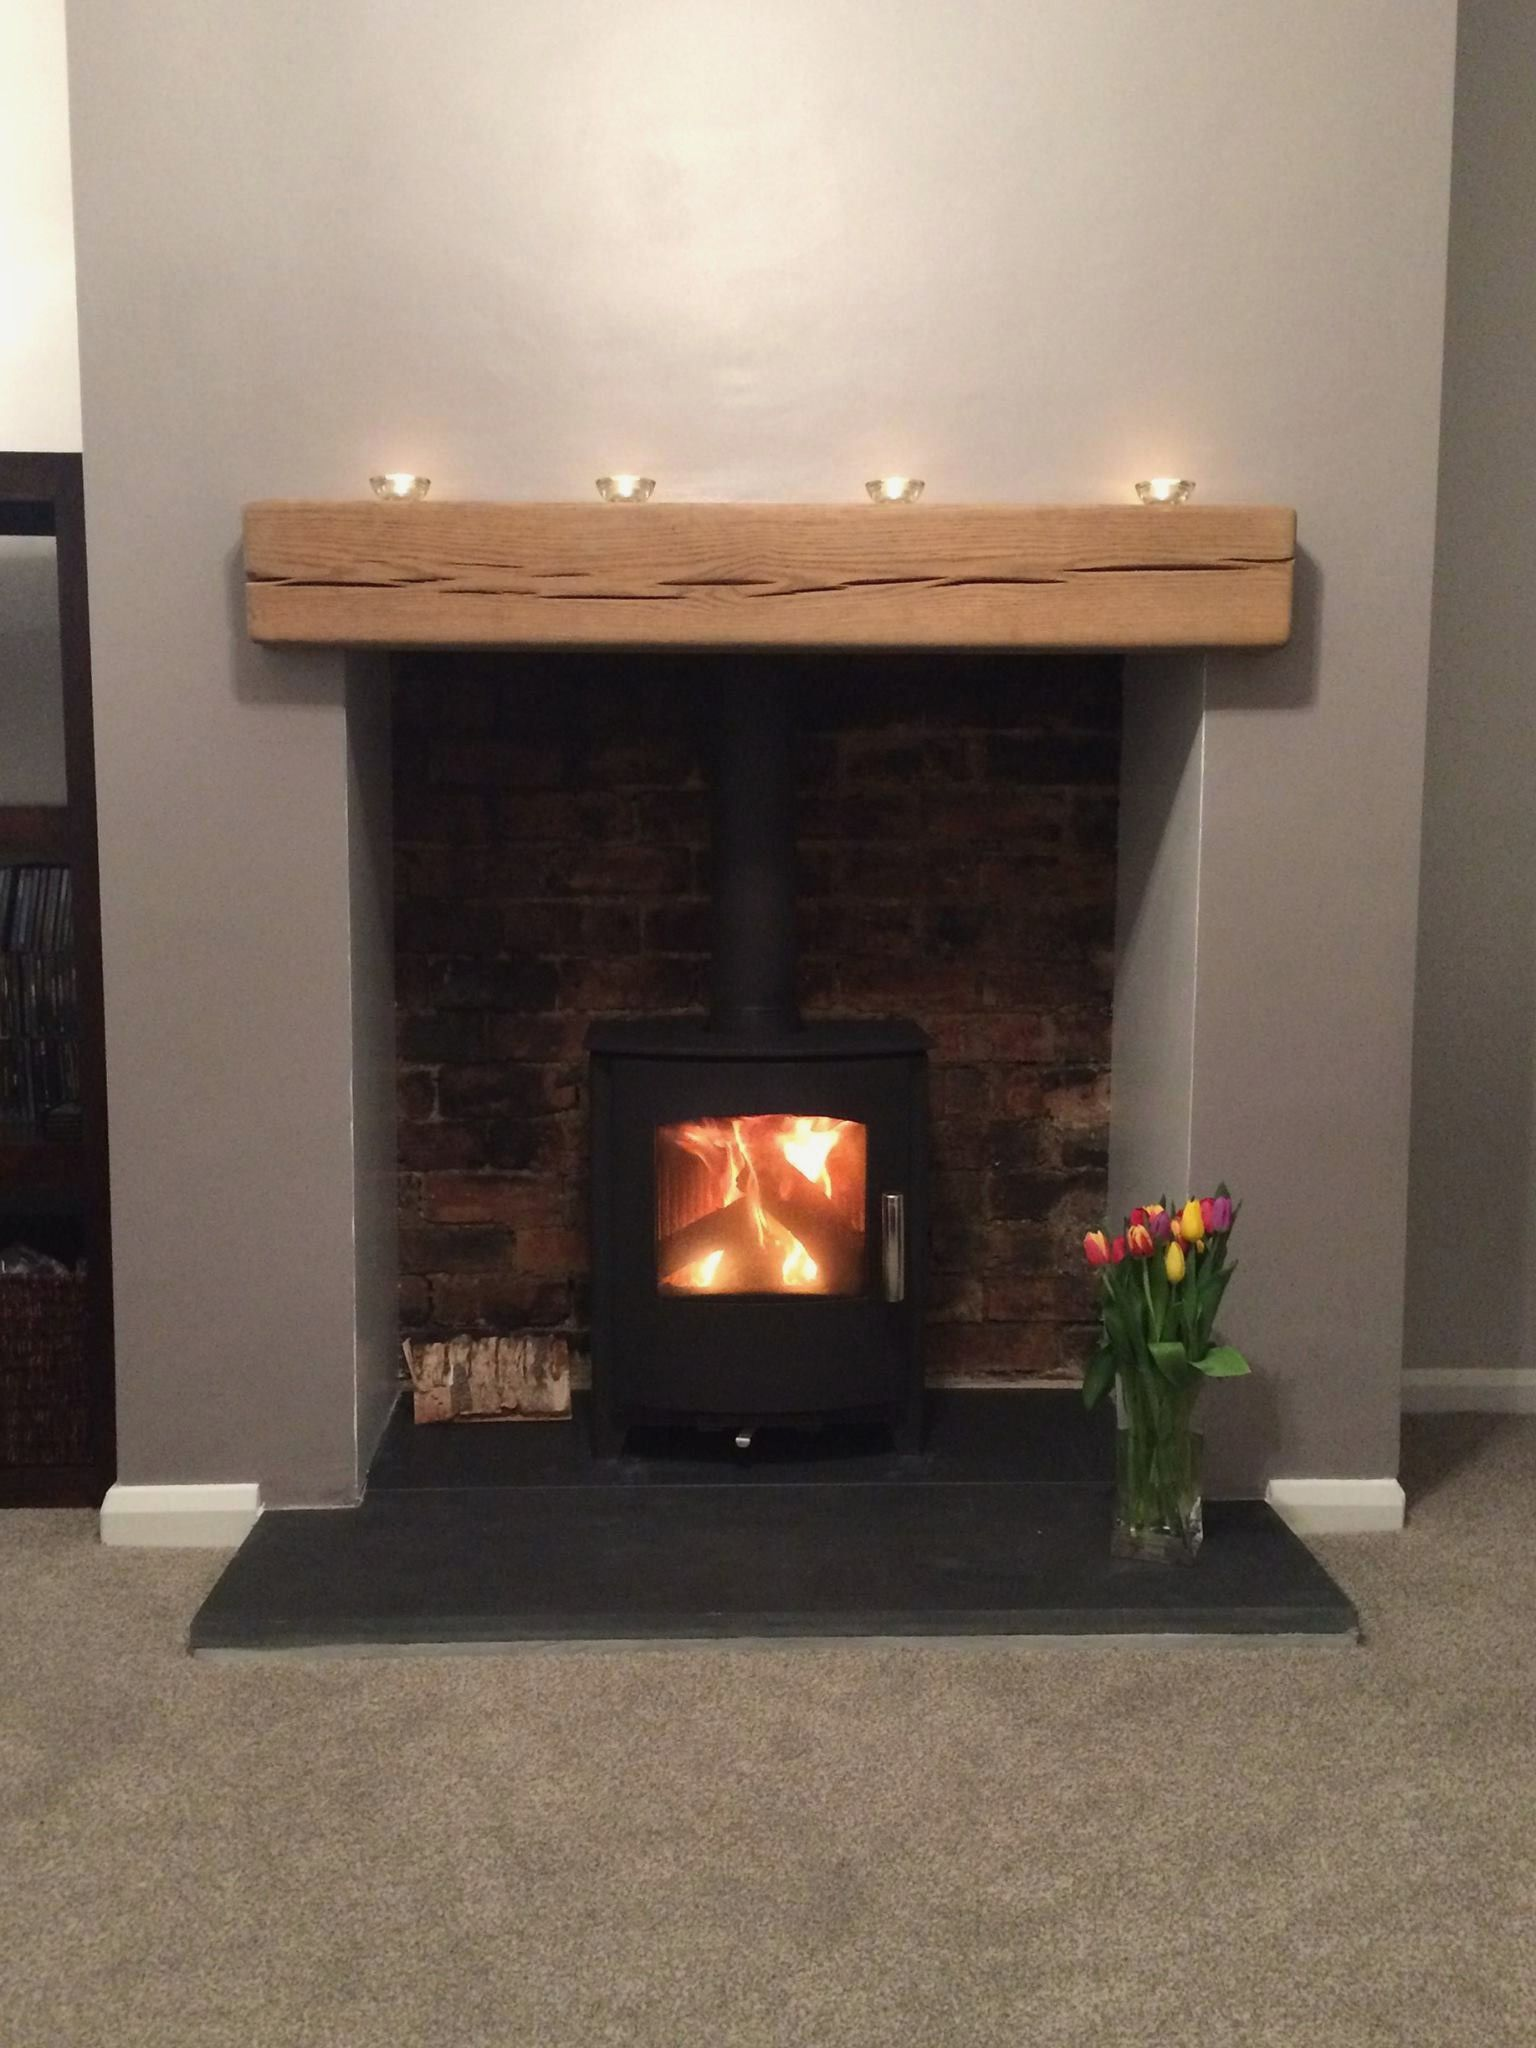 Pin By Mike Williams On Back Room Ideas Wood Stove Fireplace